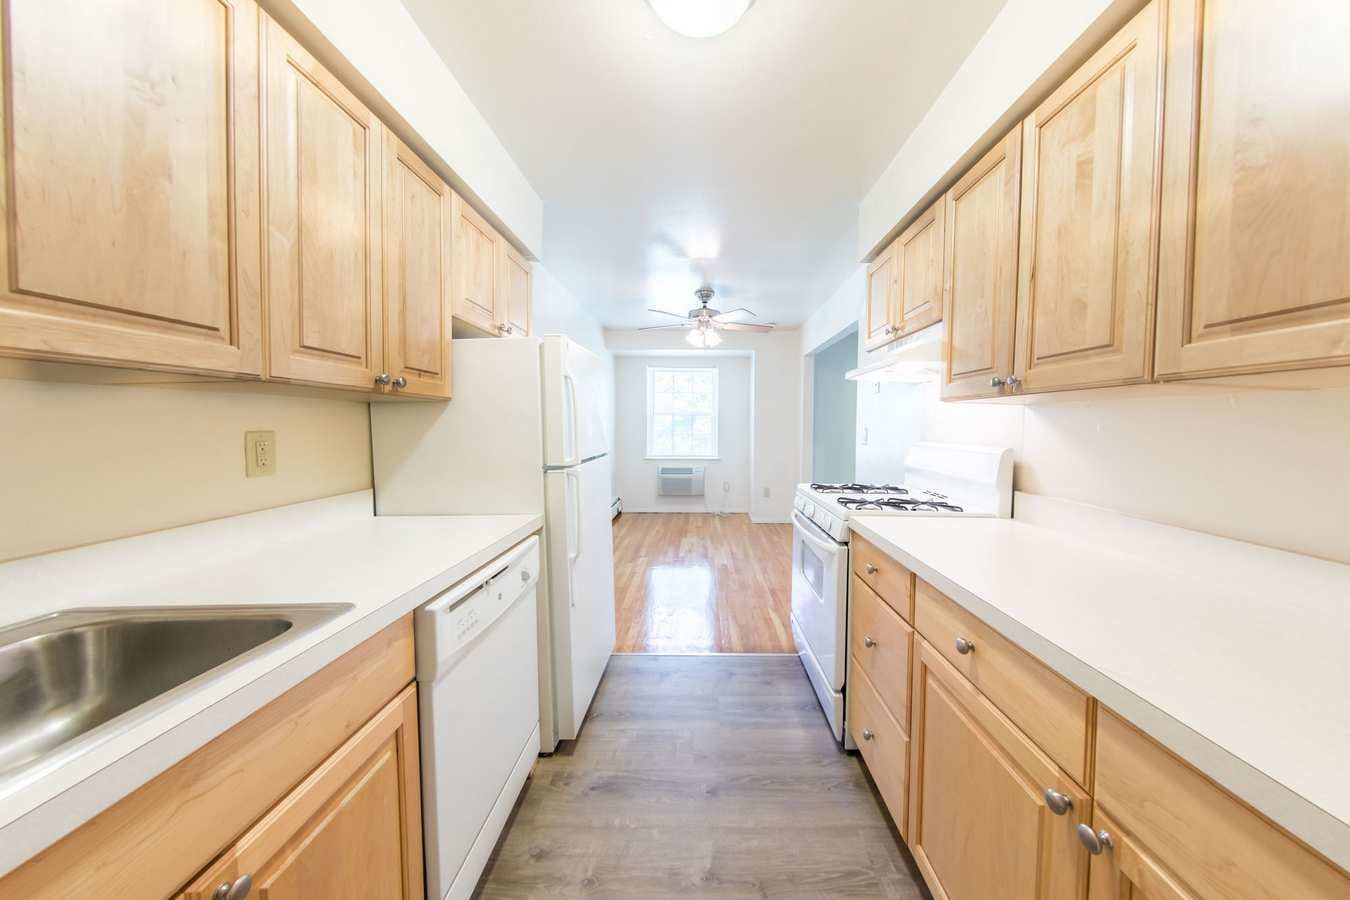 Fully equipped model kitchen at The Manors in Pomona, New York